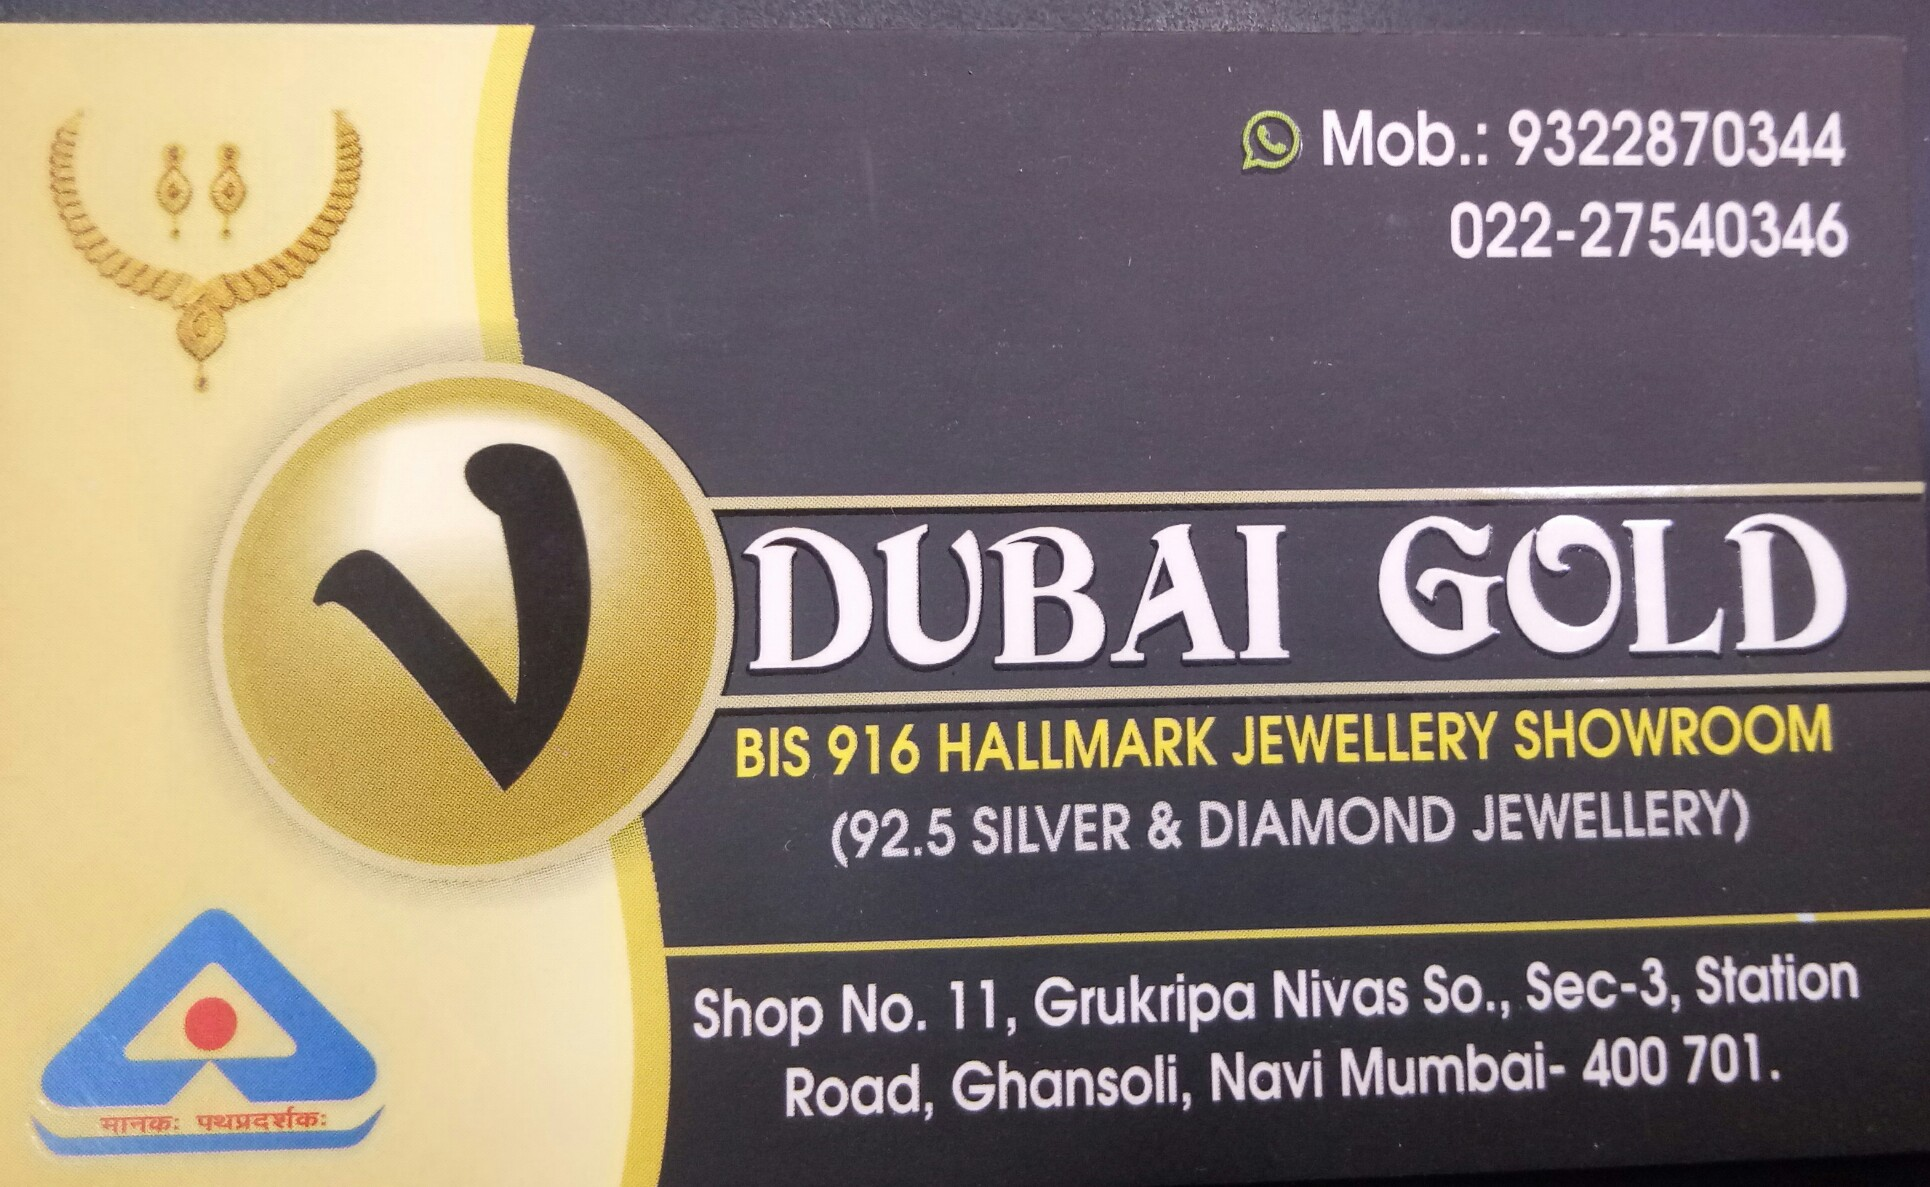 Hallmark Jewelry Shop in Ghansoli | 9322870344 | Real diamonds